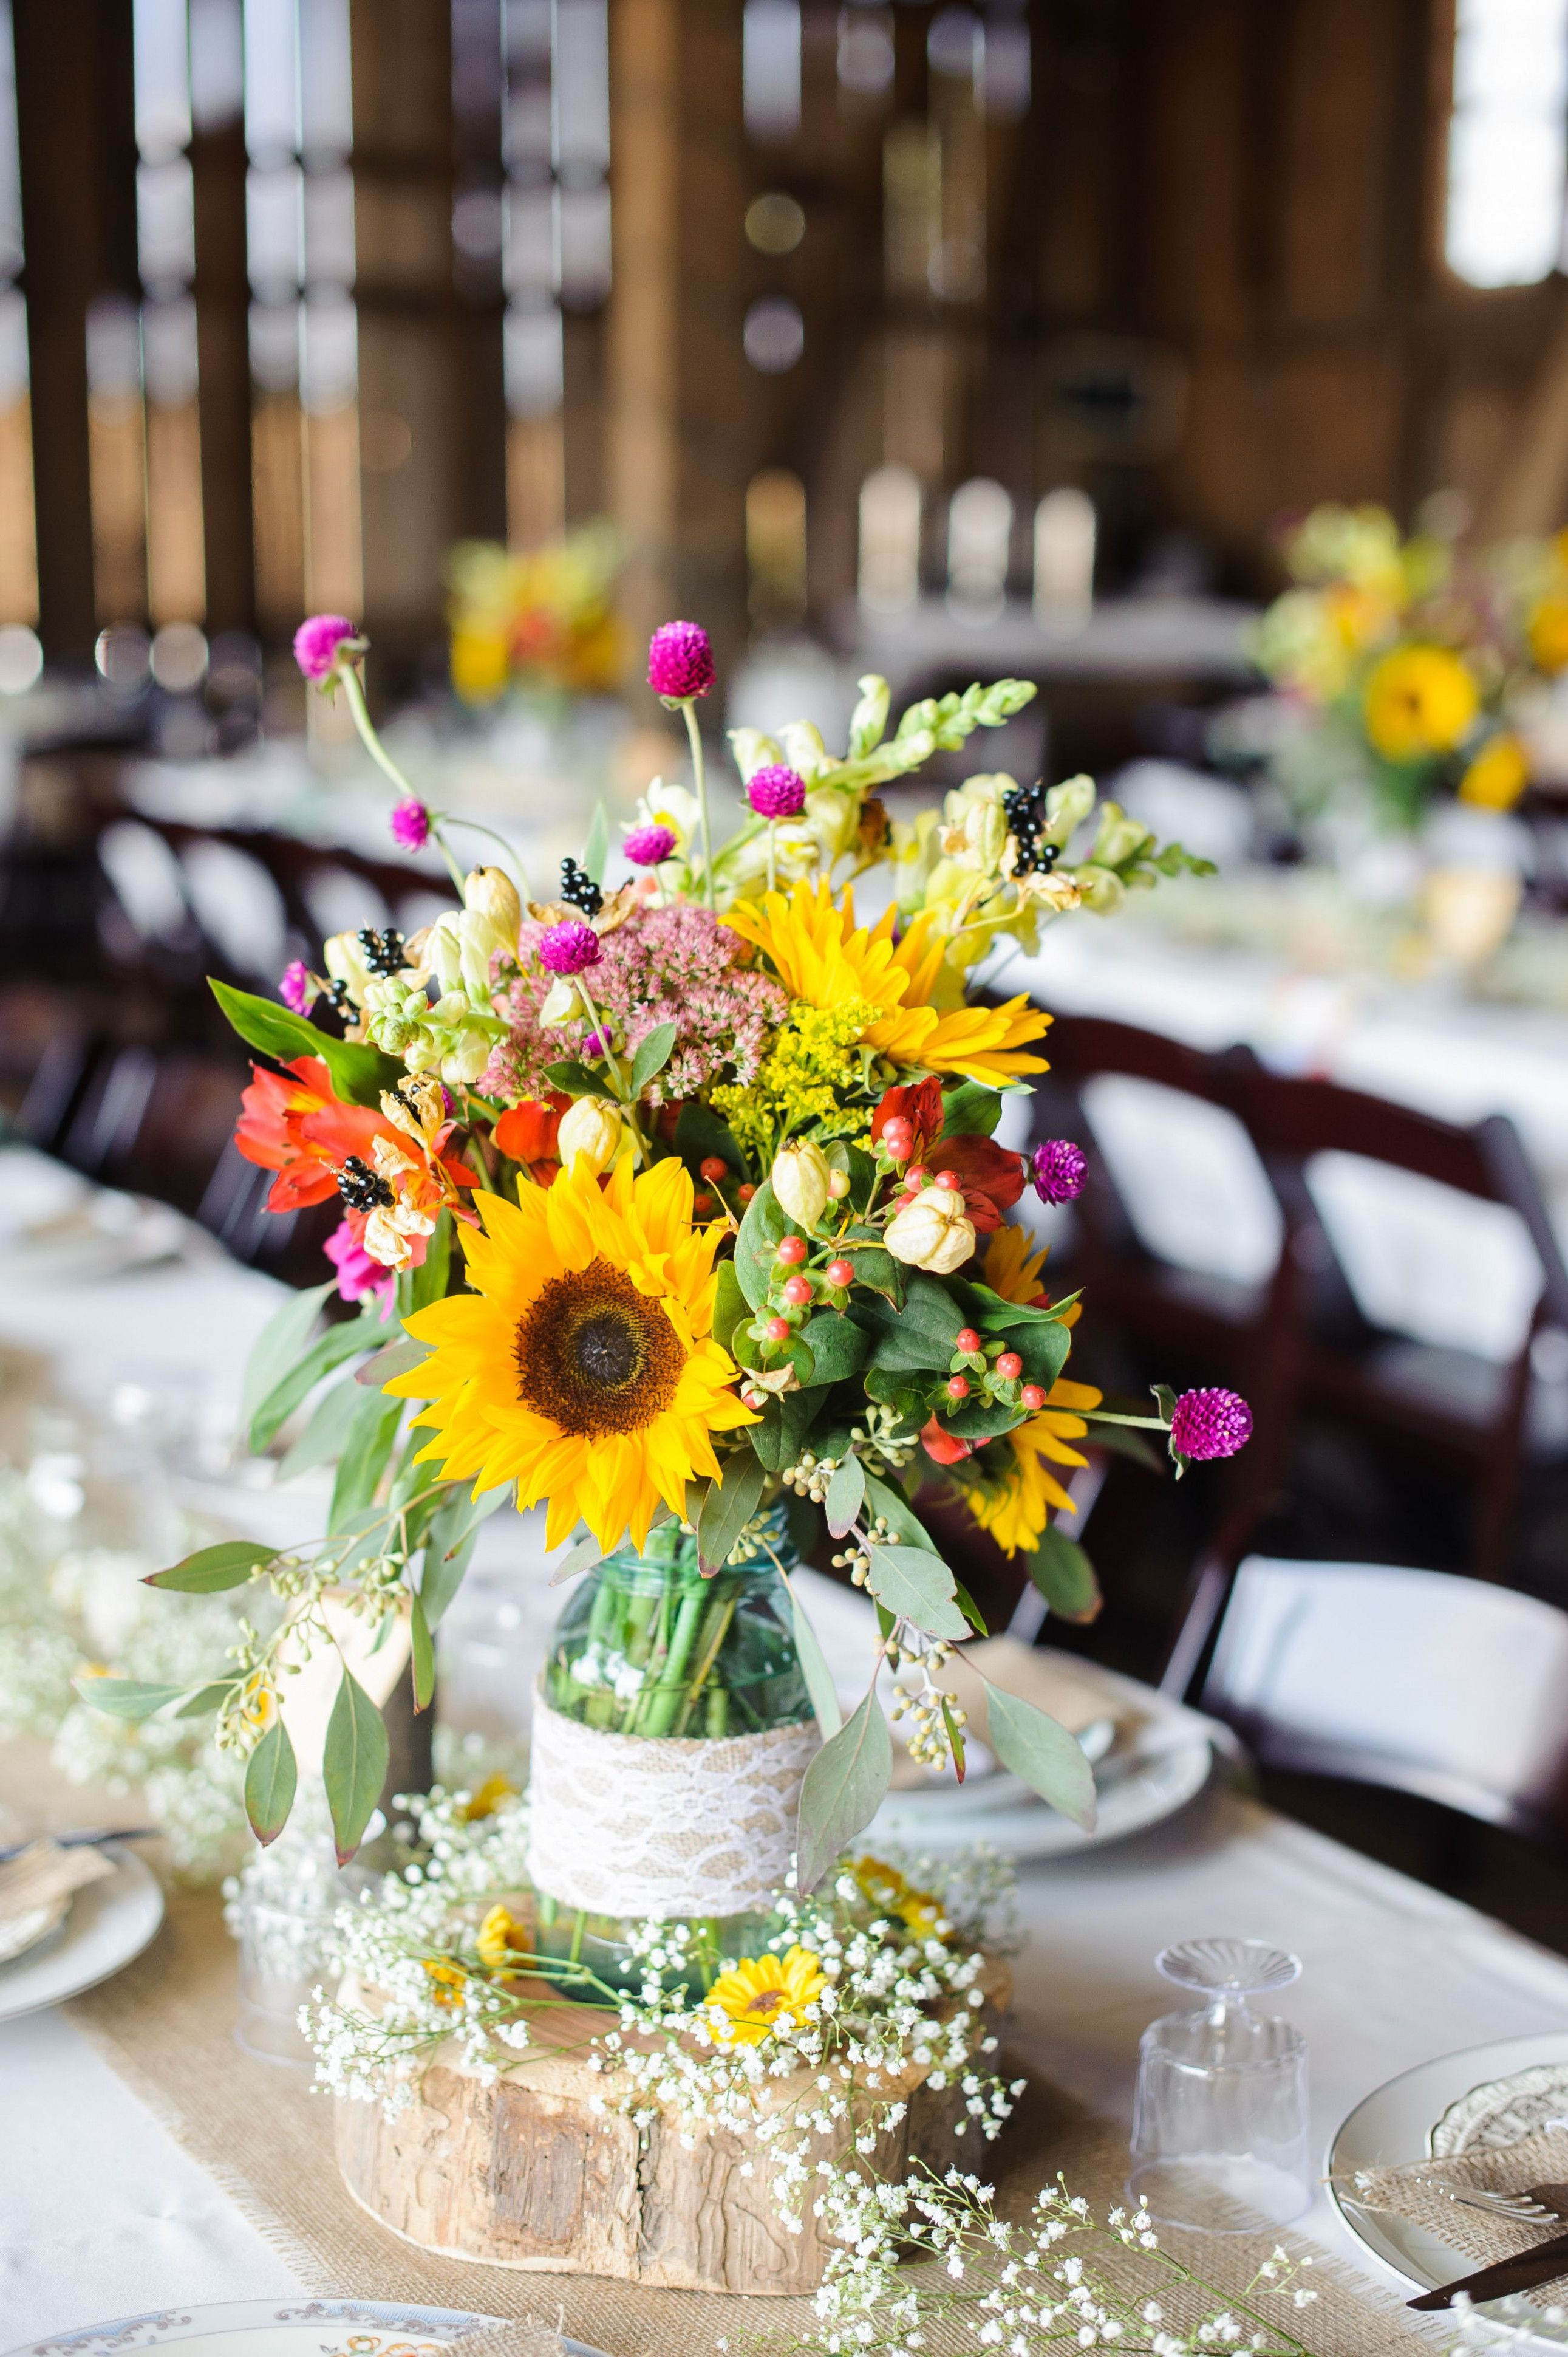 Pink and yellow centerpieces in mason jars on burlap table runners